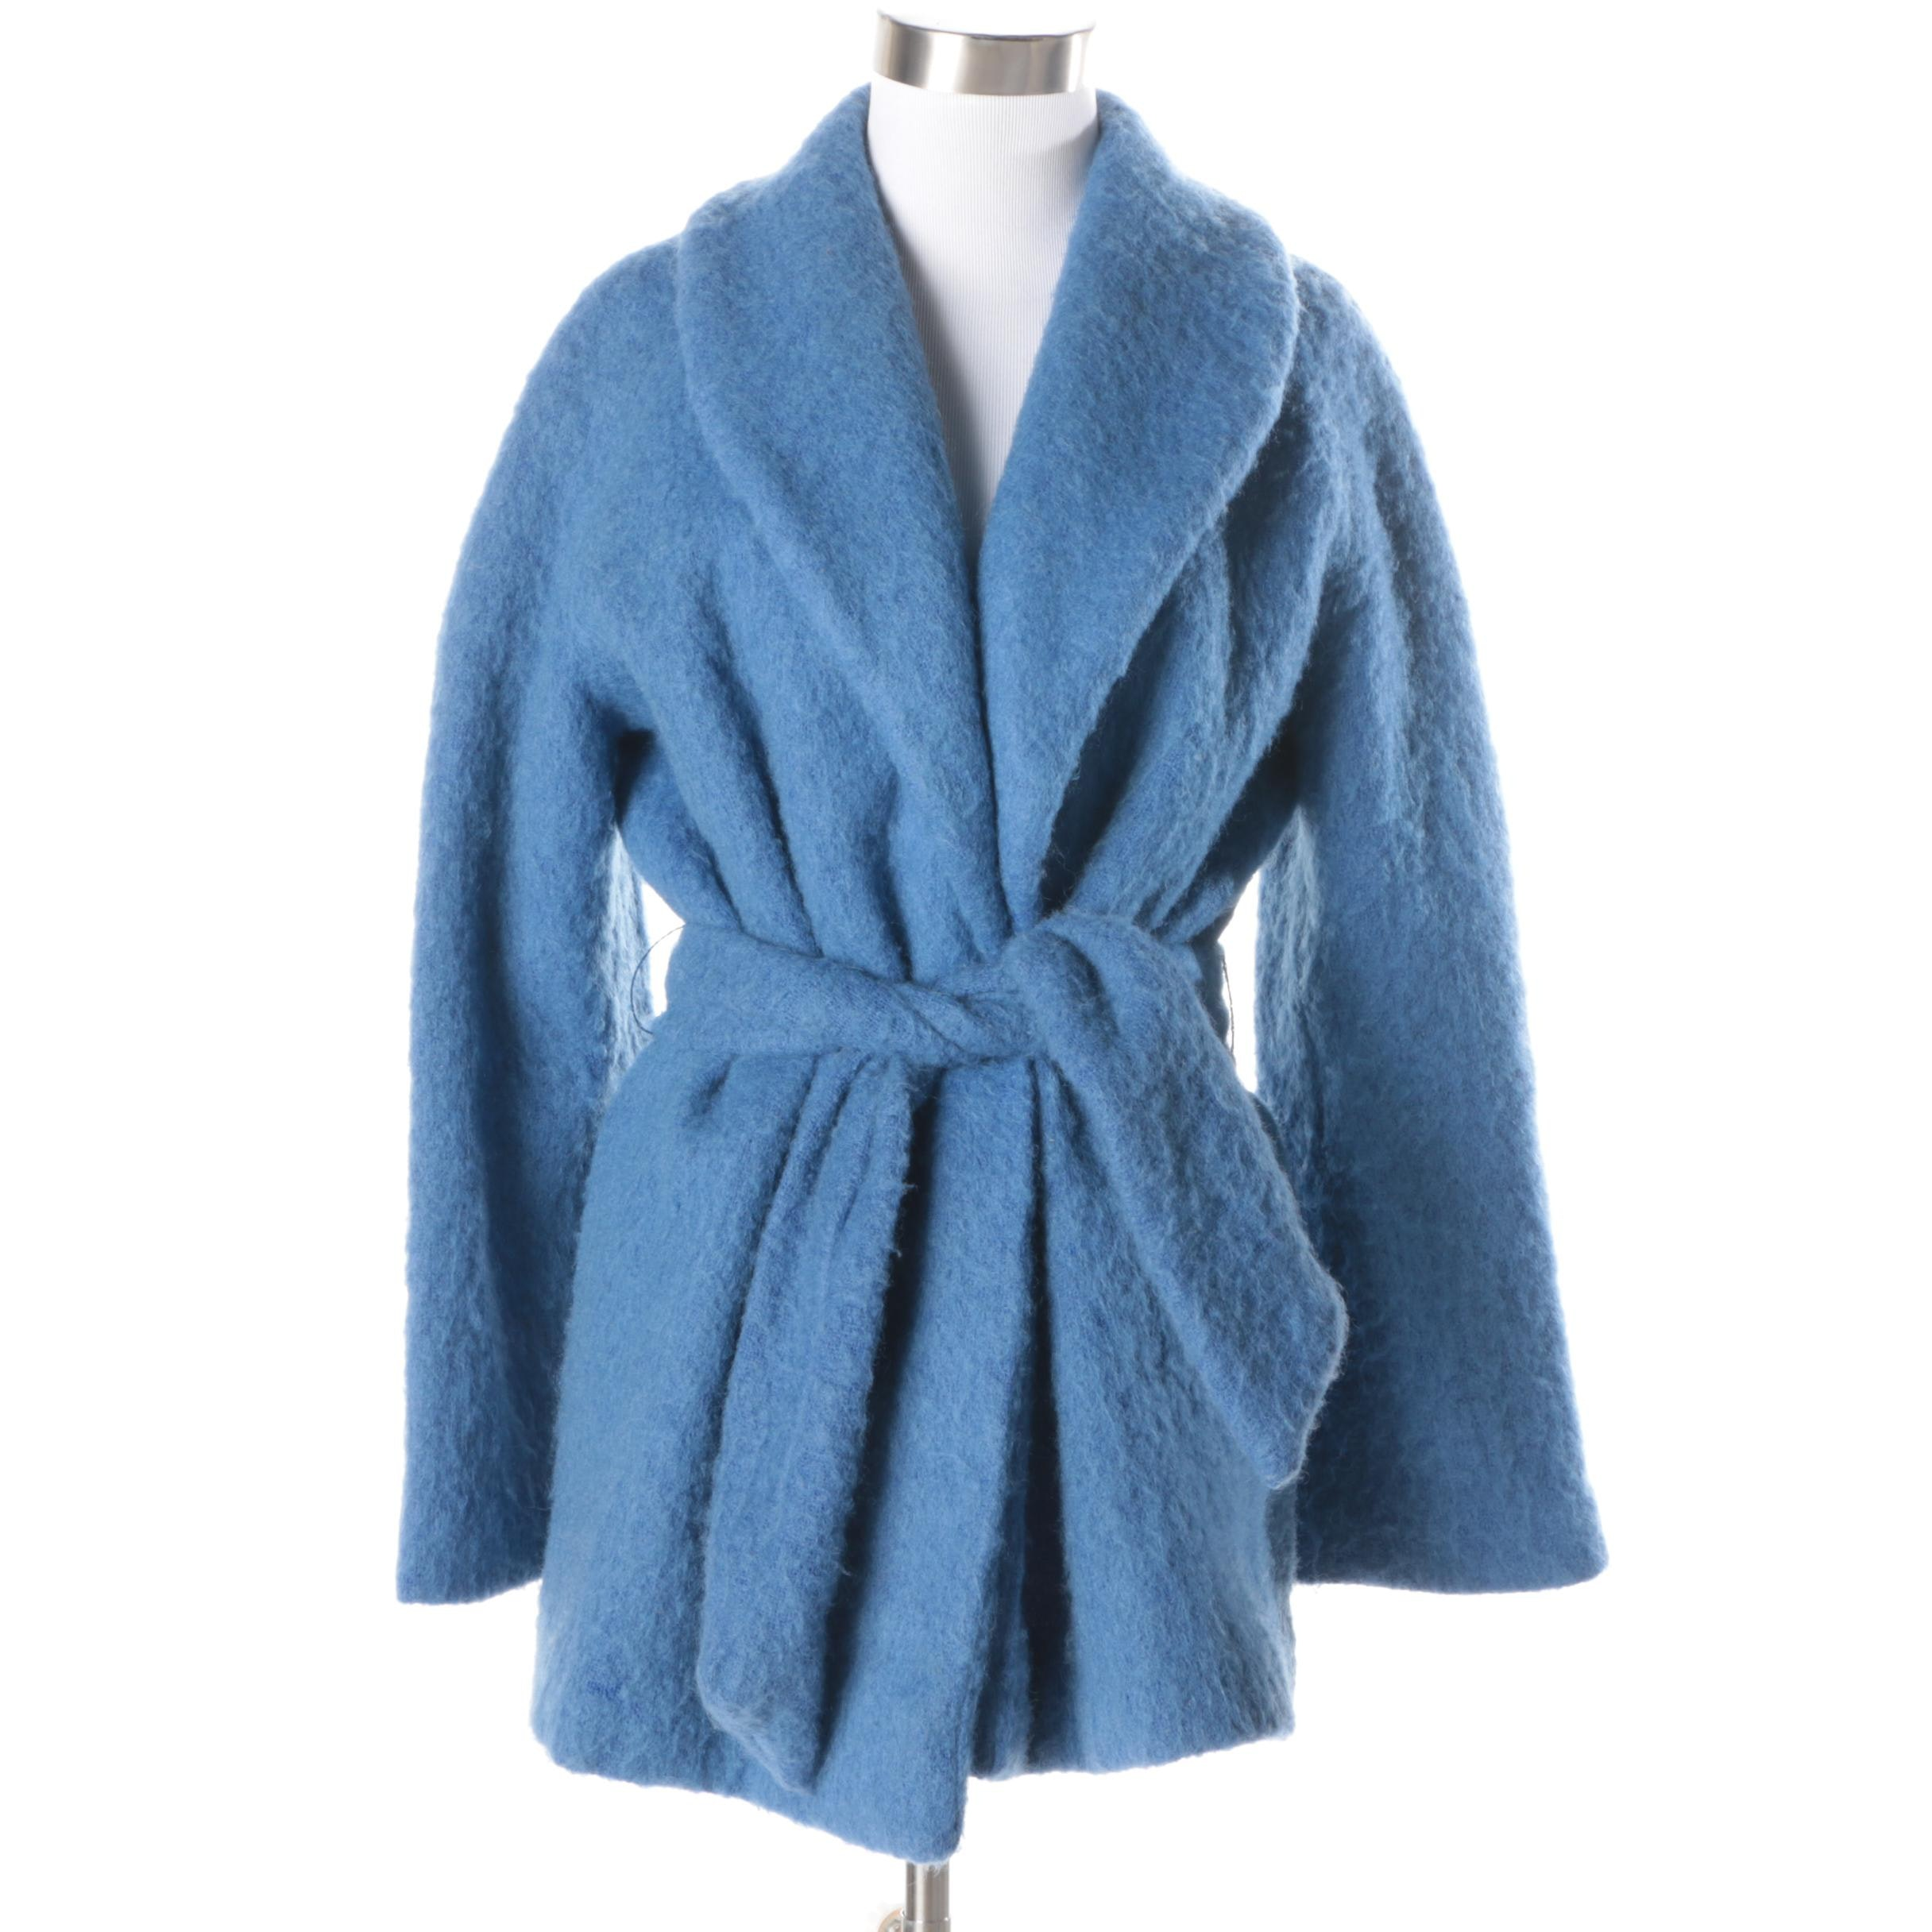 1960s Vintage Emily Wetherby Blue Felted Wool Coat